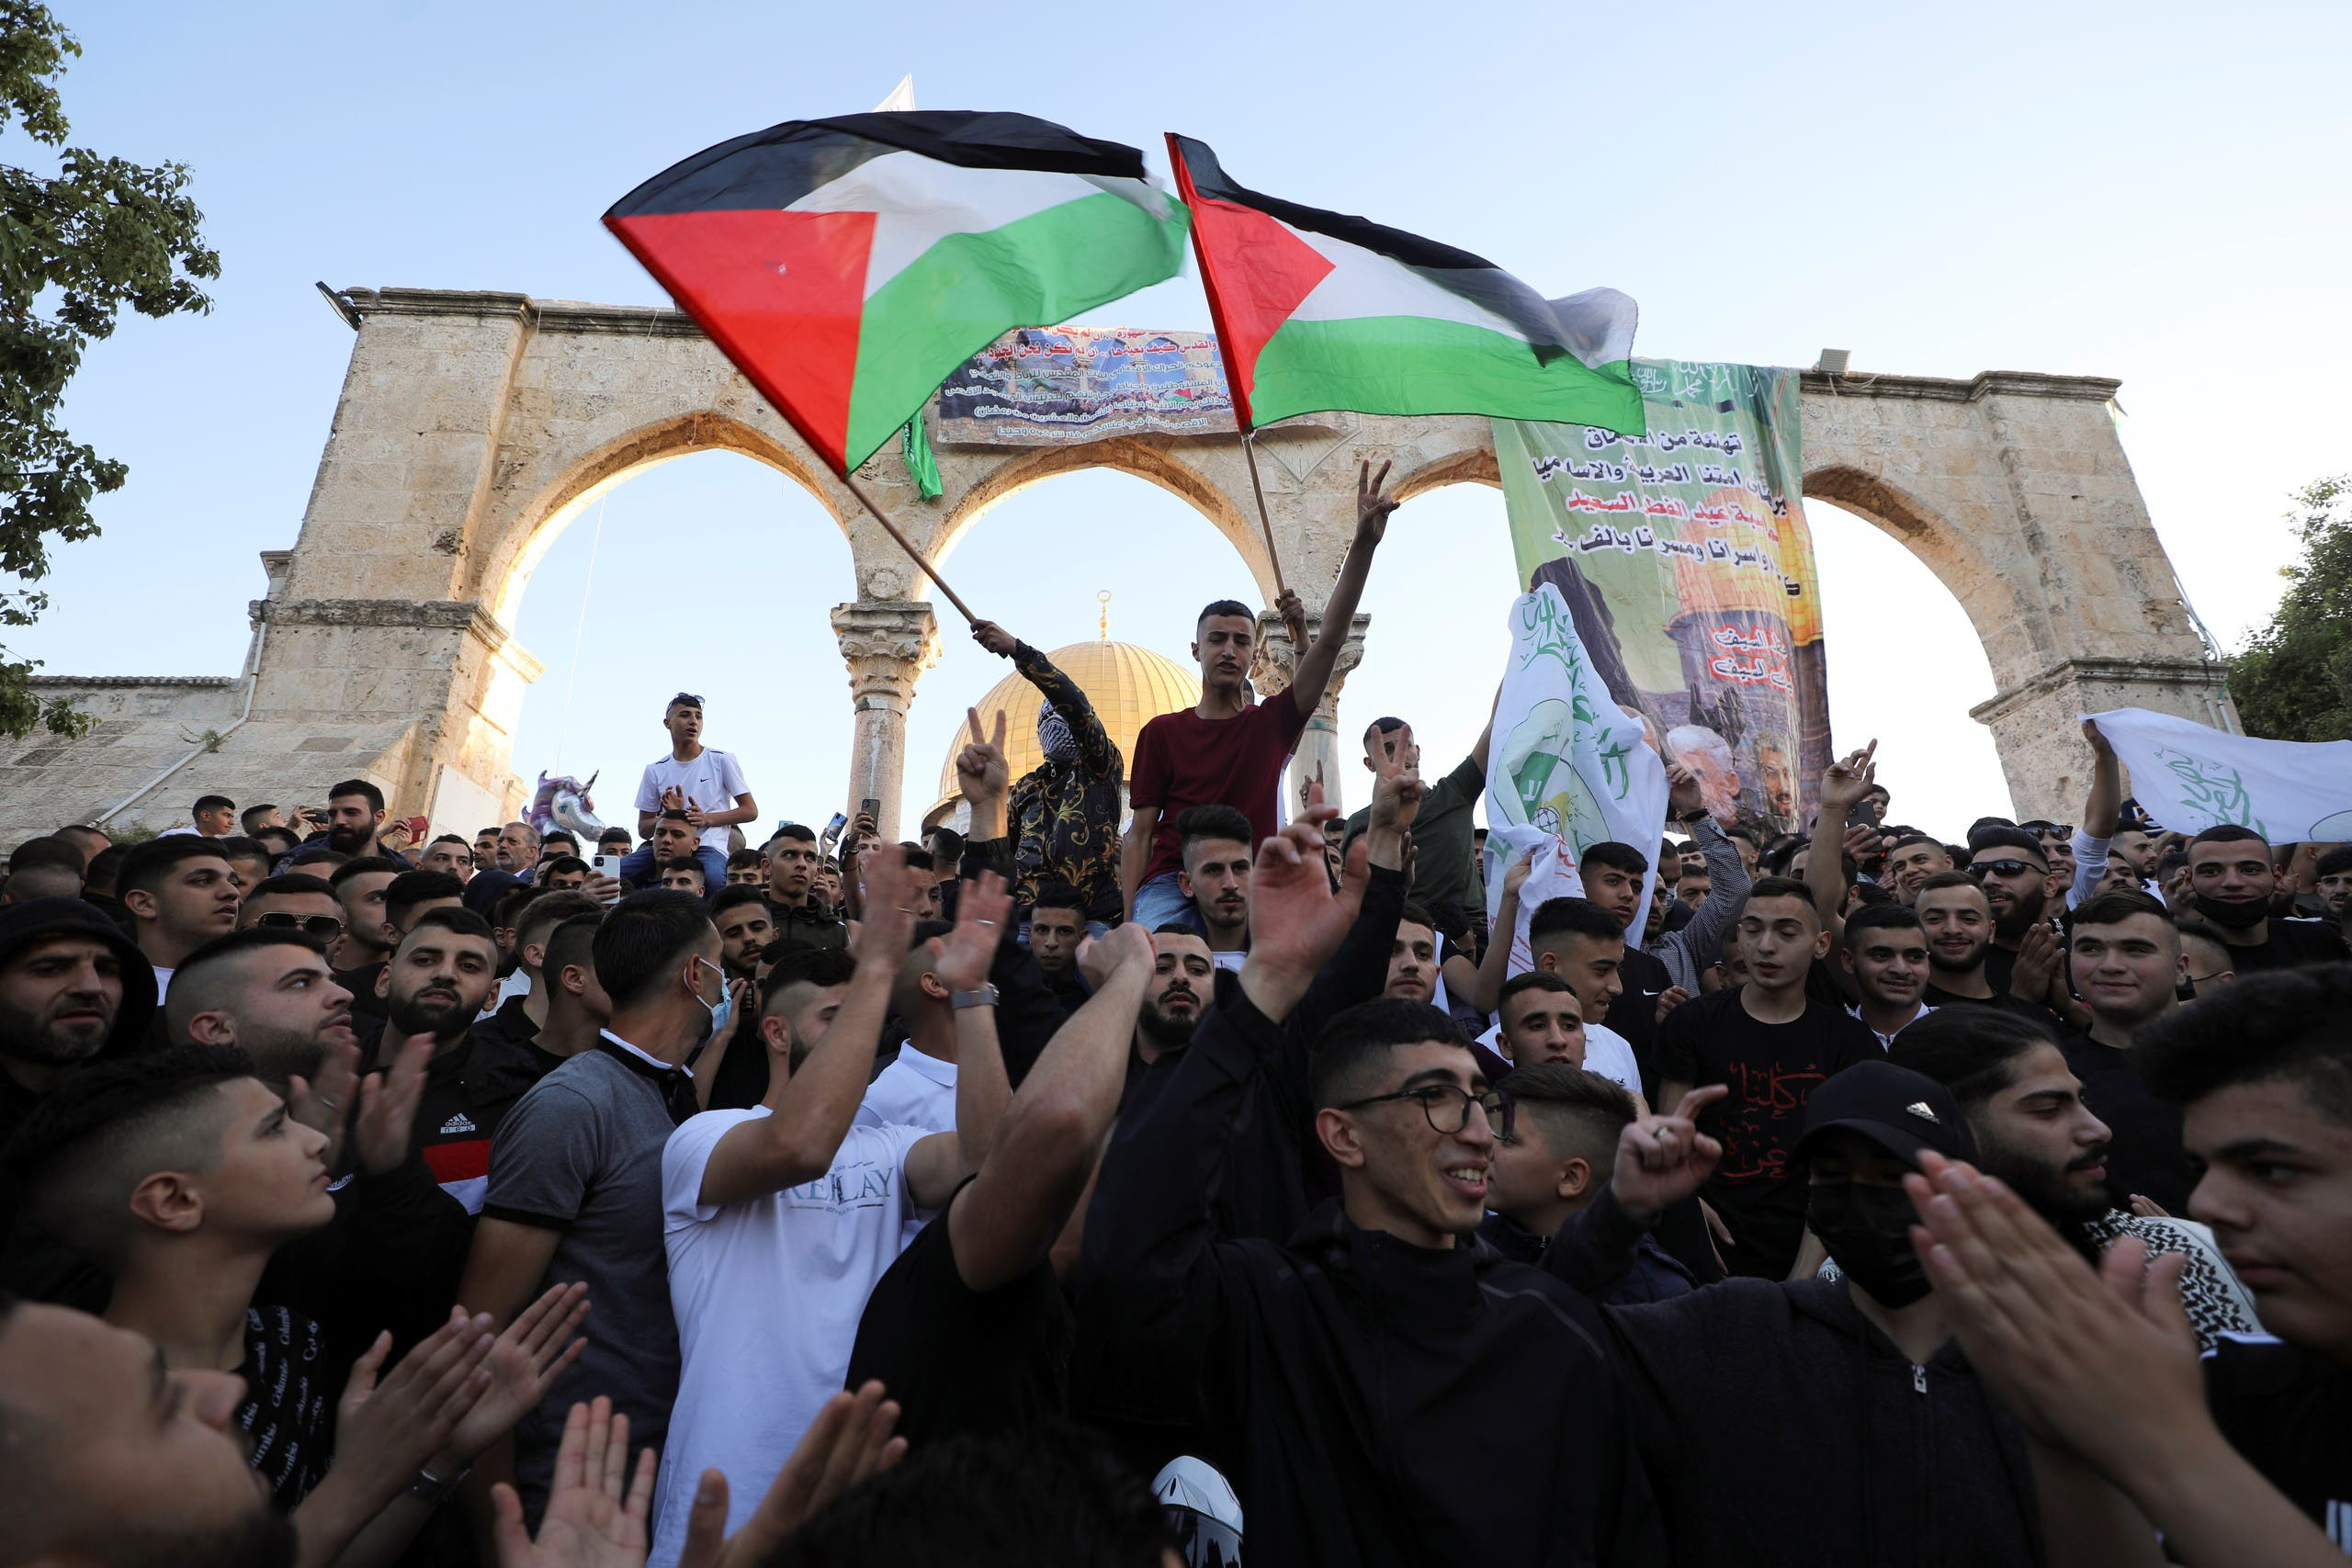 People wave Palestinian flags during Eid al-Fitr prayers, which mark the end of the holy fasting month of Ramadan, at the compound that houses al-Aqsa mosque on May 13, 2021. (Reuters)